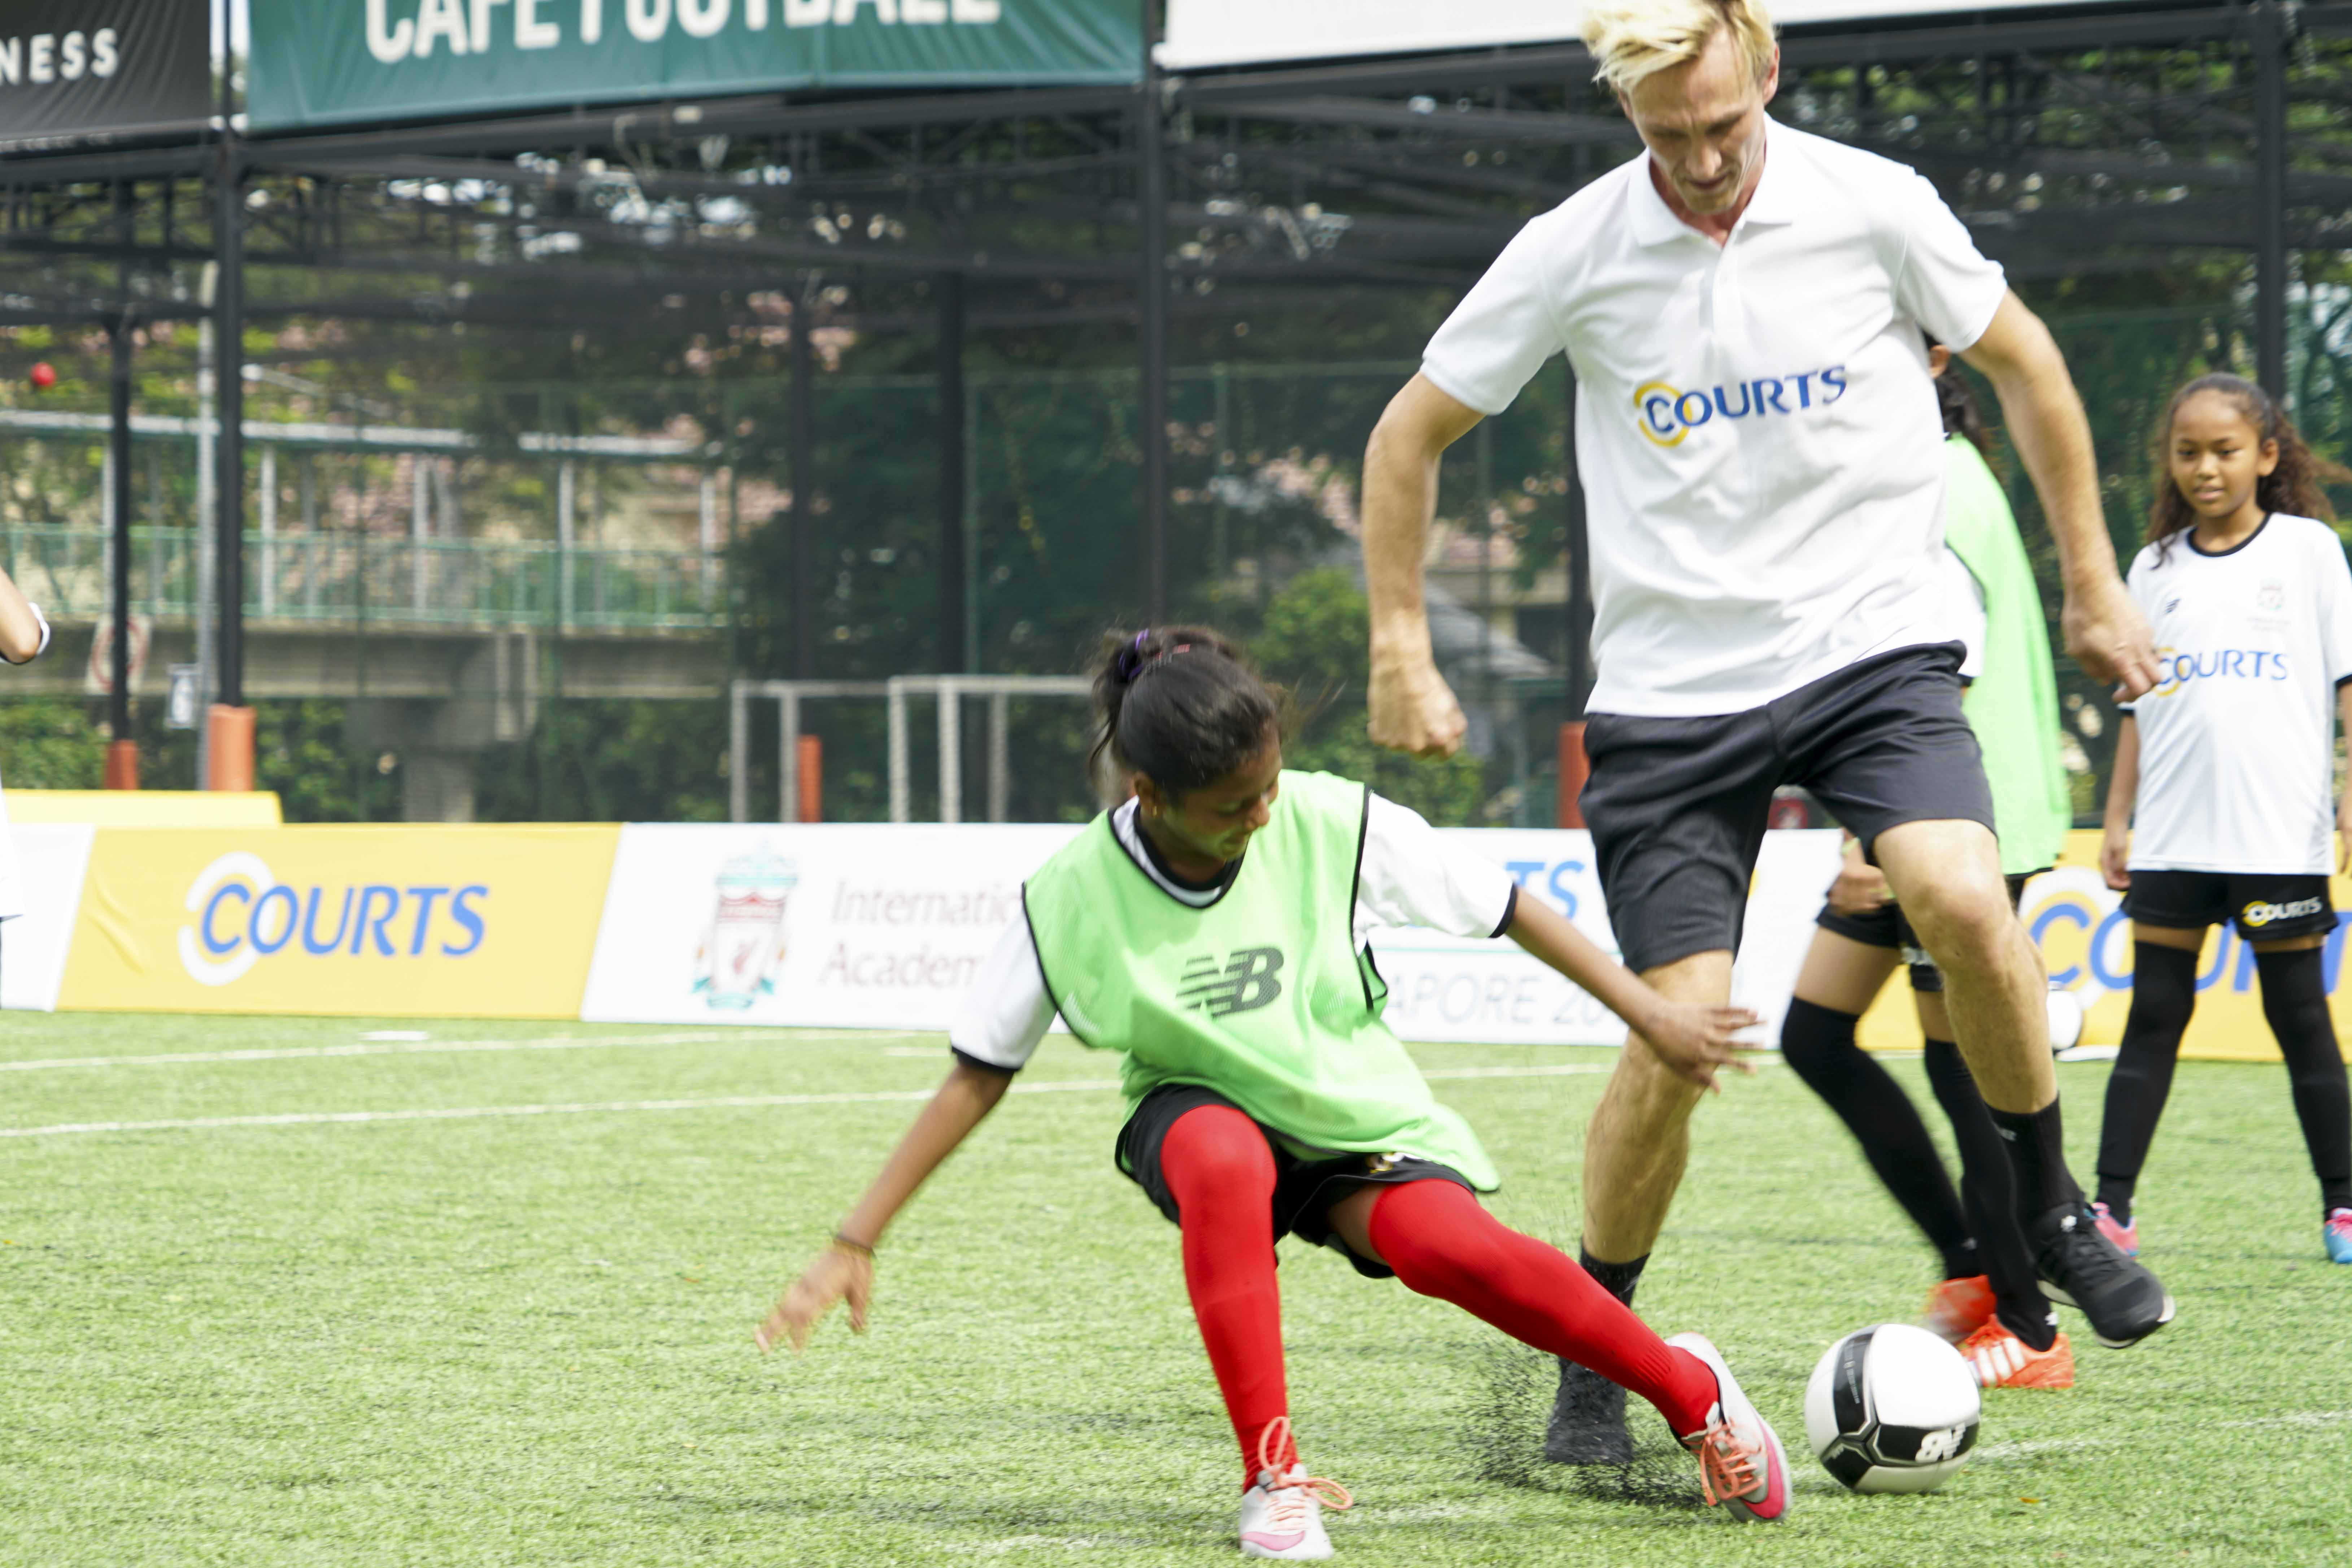 Hyppia at COURTS Football academy